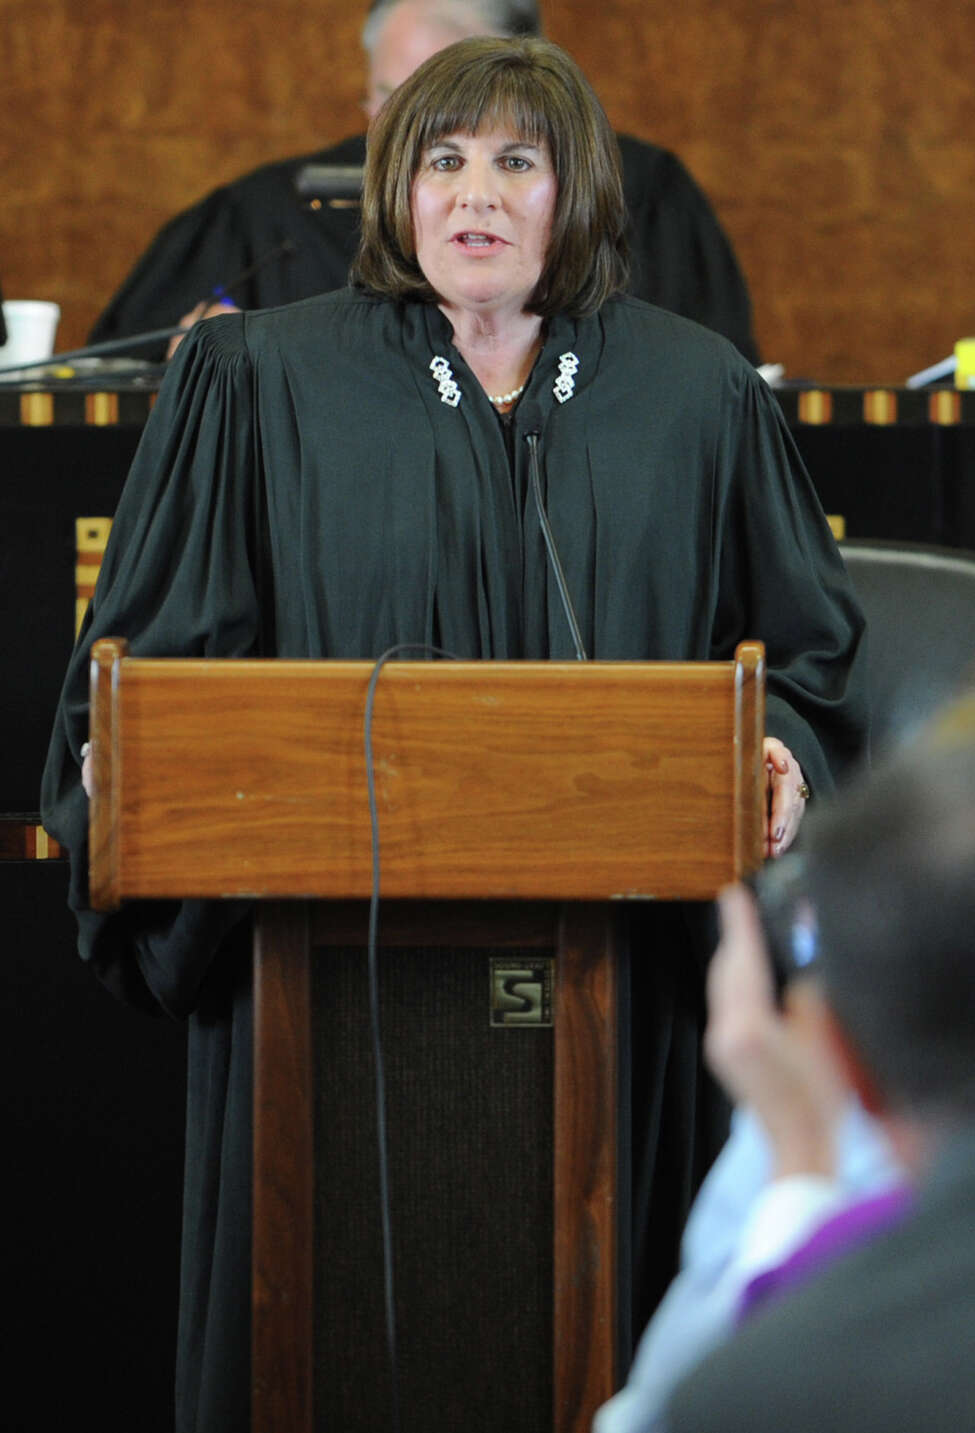 U.S. District Judge Mae D'Agostino speaks after being sworn in by Chief Judge Norman A. Mordue at the Federal Courthouse in Albany, N.Y. on Monday, Sept. 19, 2011. (Lori Van Buren / Times Union)